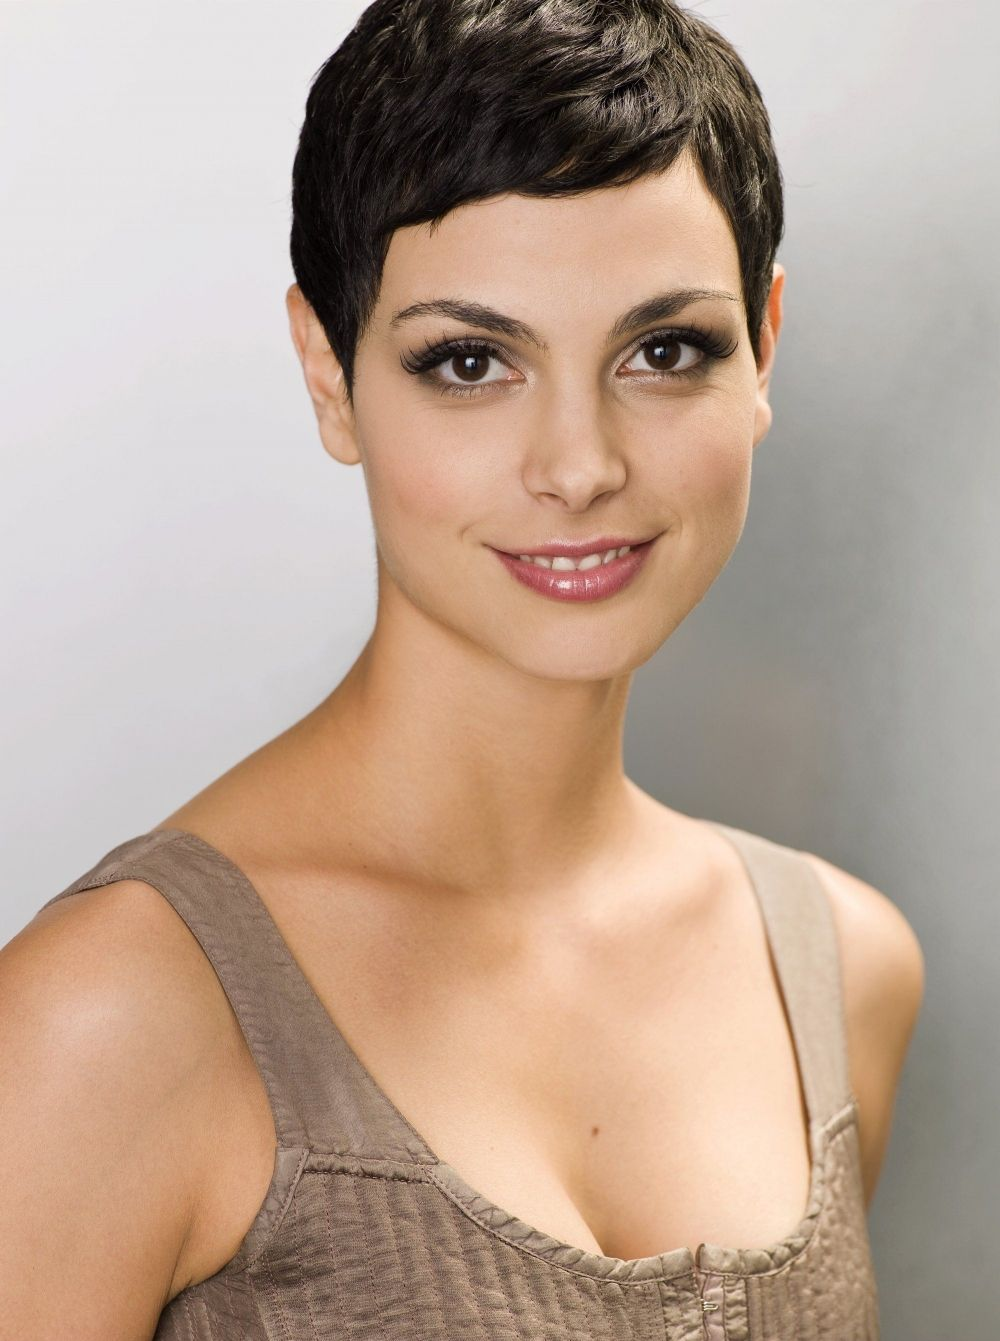 morena baccarin http://www.theplace2.ru/archive/morena_baccarin